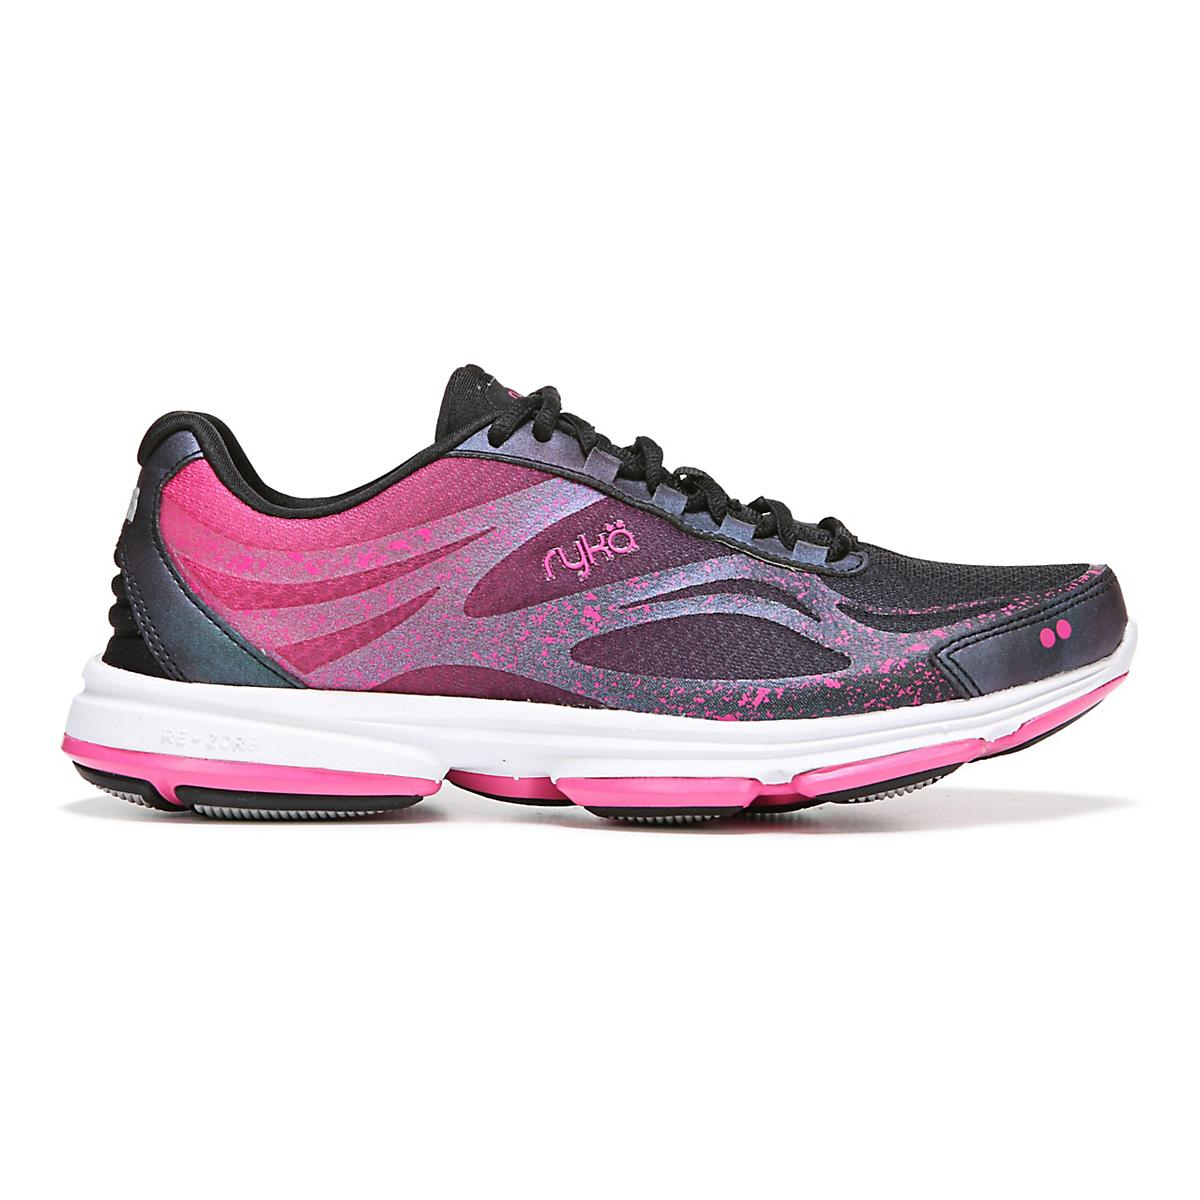 89acf28926b Womens Ryka Devotion Plus 2 Walking Shoe at Road Runner Sports